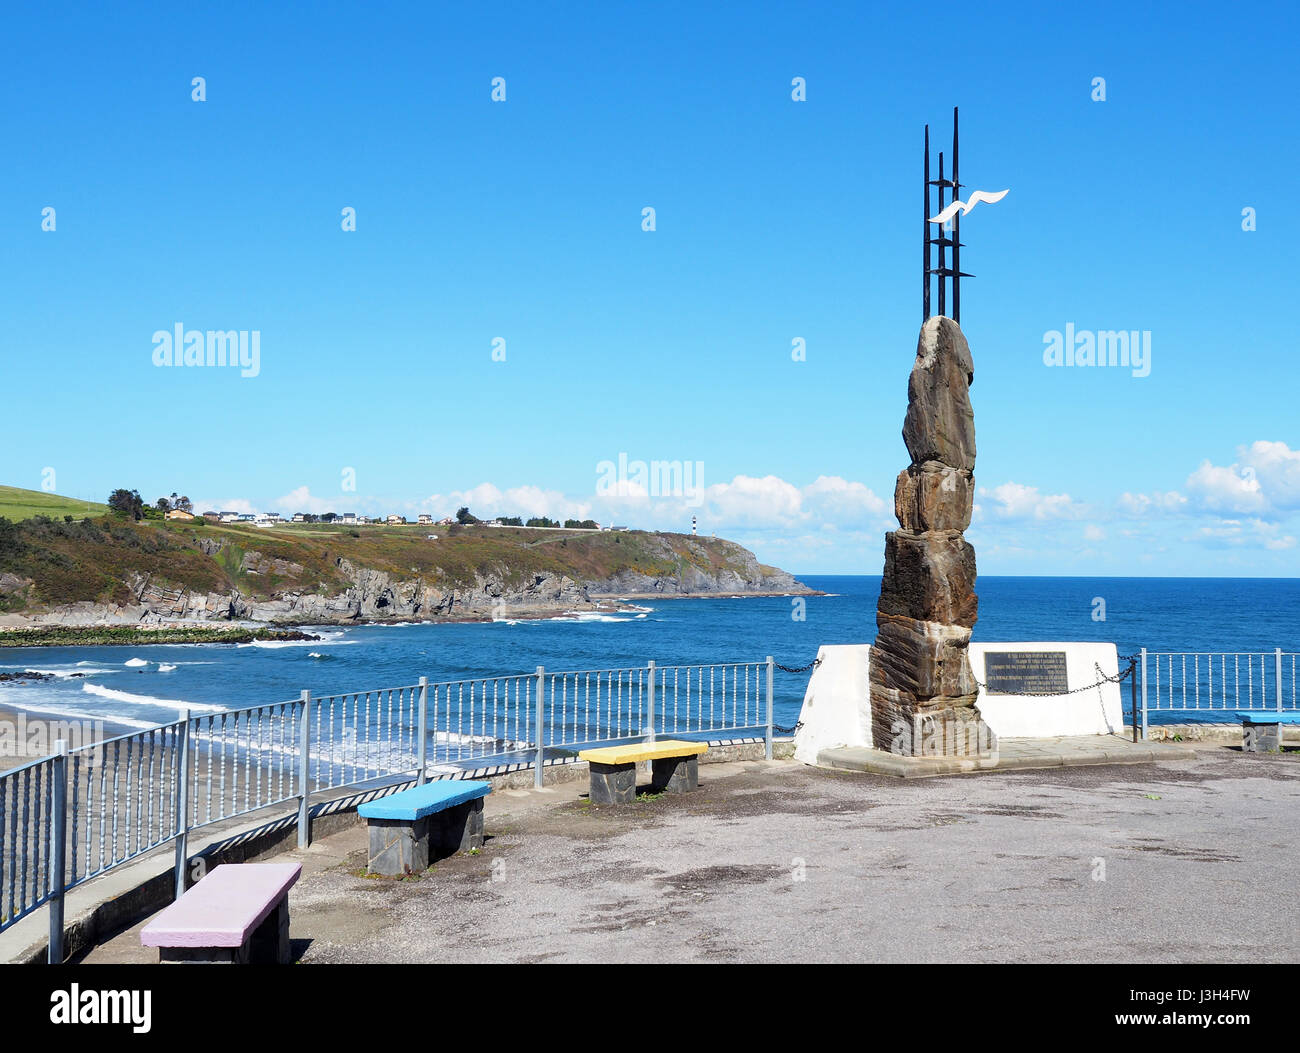 Fotos De Navia emigrant monument in navia, spain. it is located in the